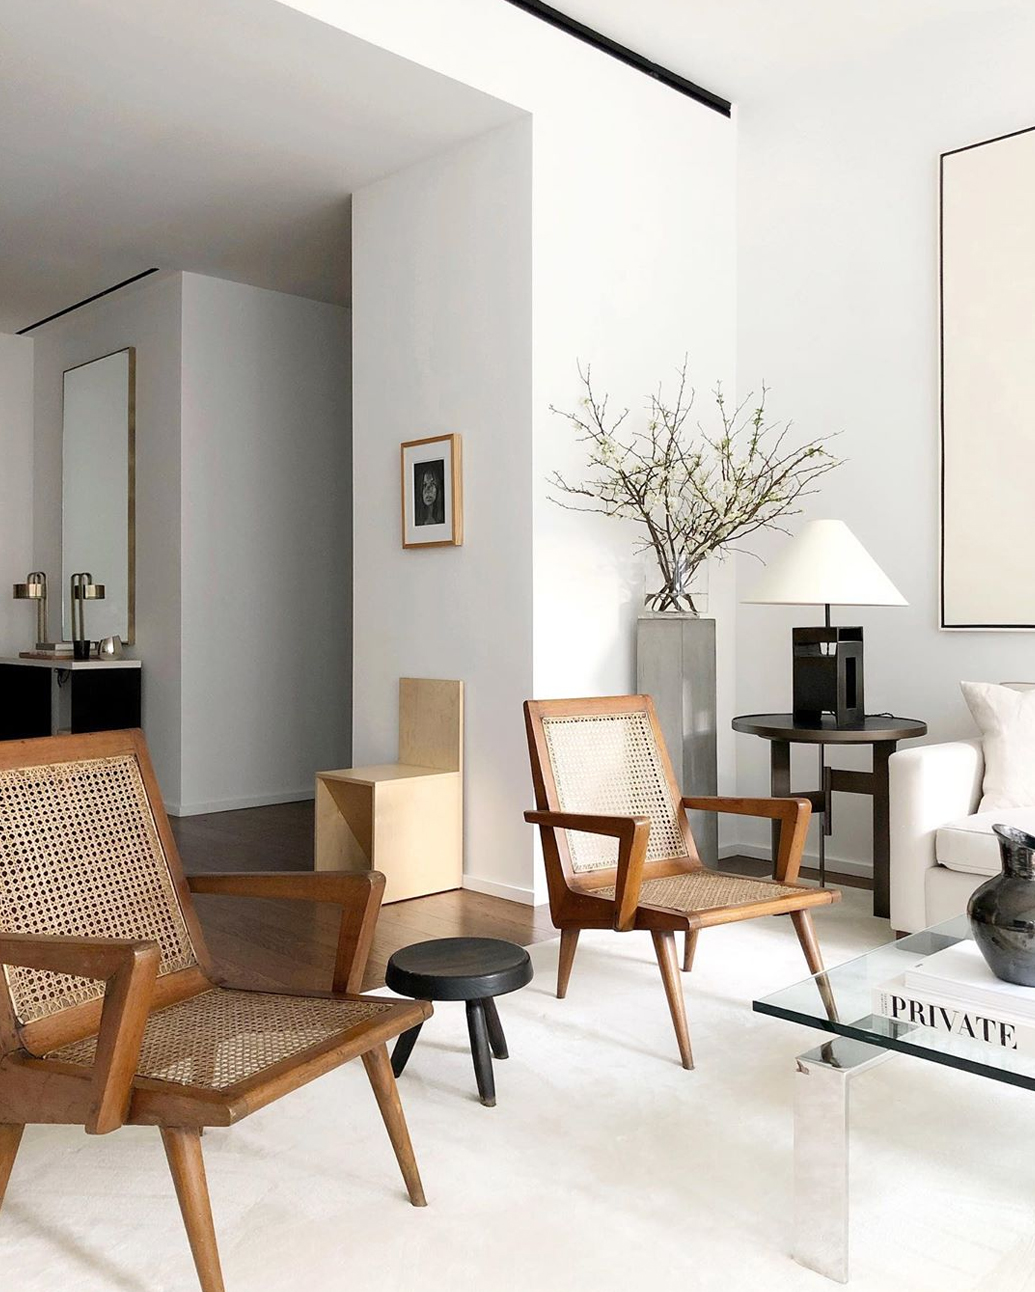 Work from home in this bright, white minimal interior via @alyssakapitointeriors.